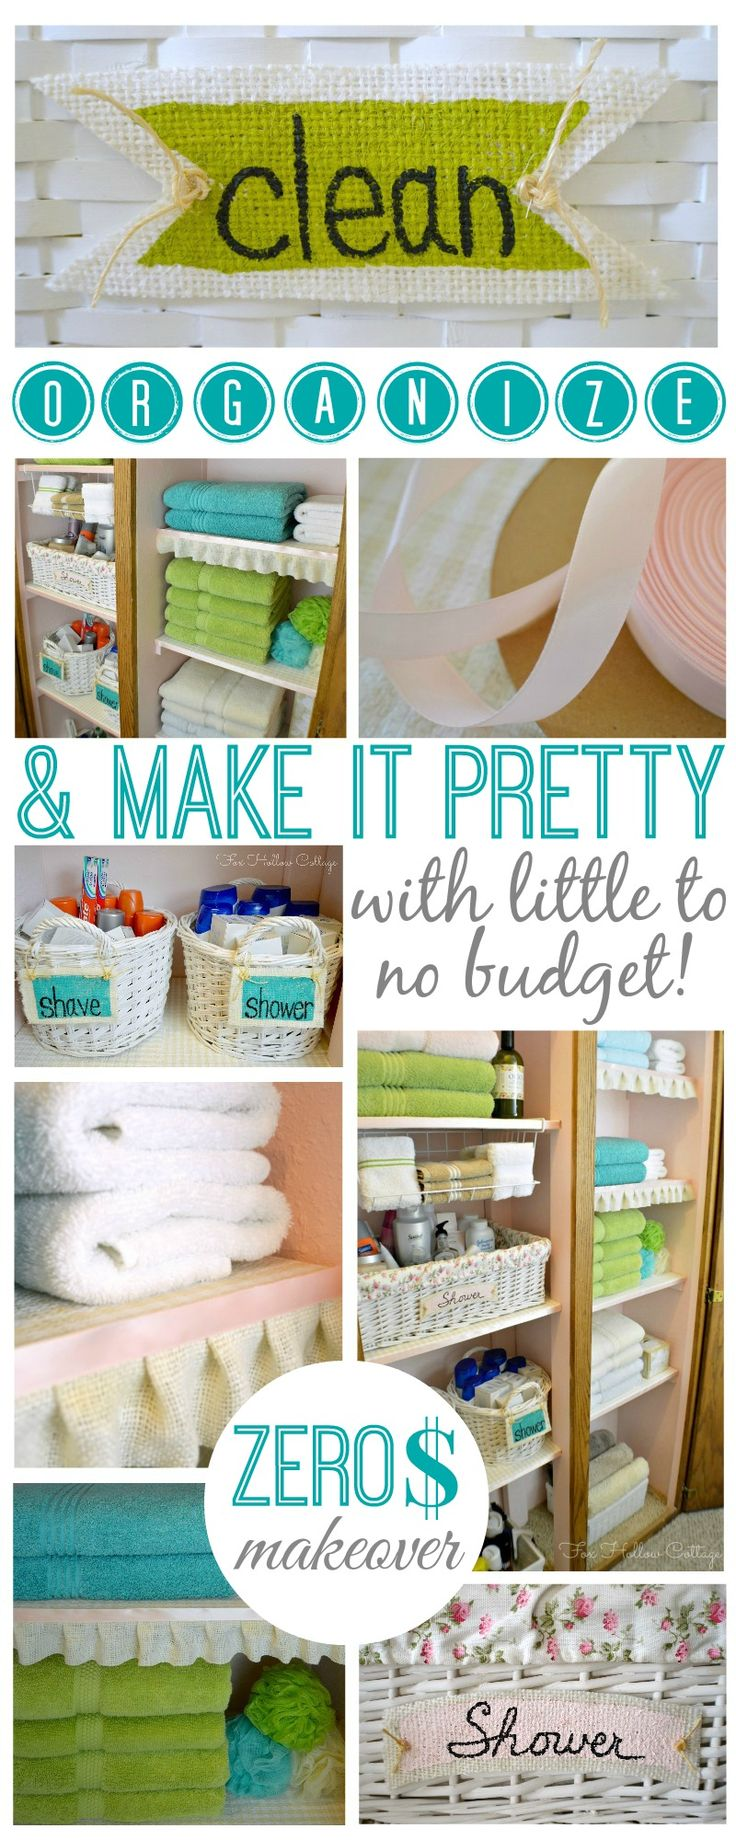 Linen Closet Before and After Zero Budget (shop your home!) Makeover | Clean, Purge and Organize